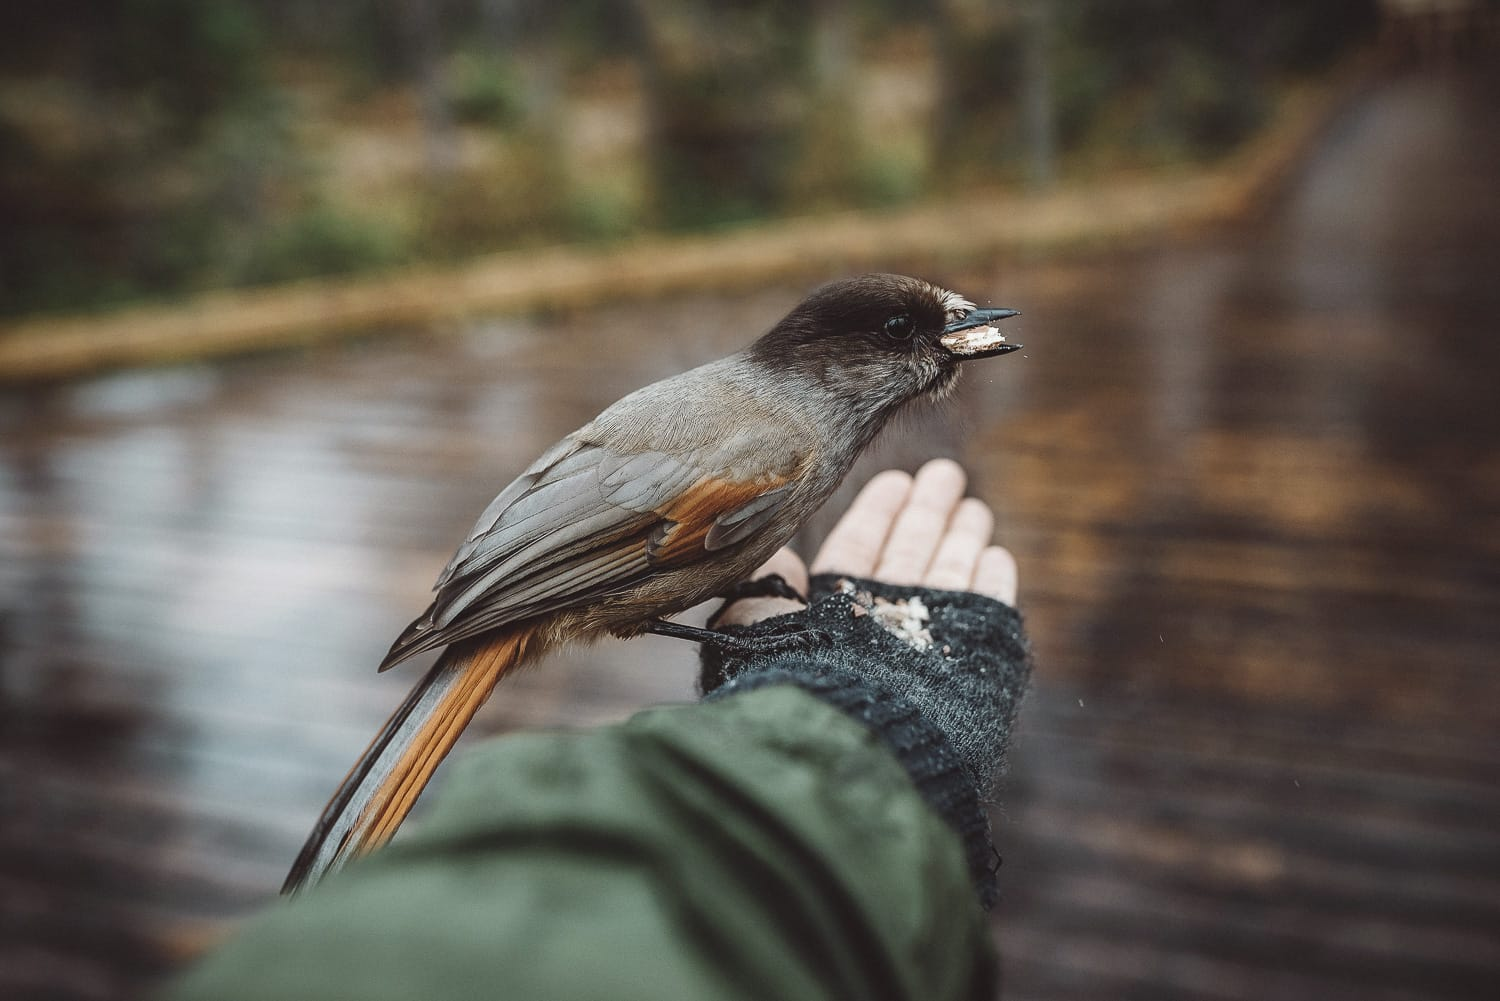 feeding a Siberian jay from the hand